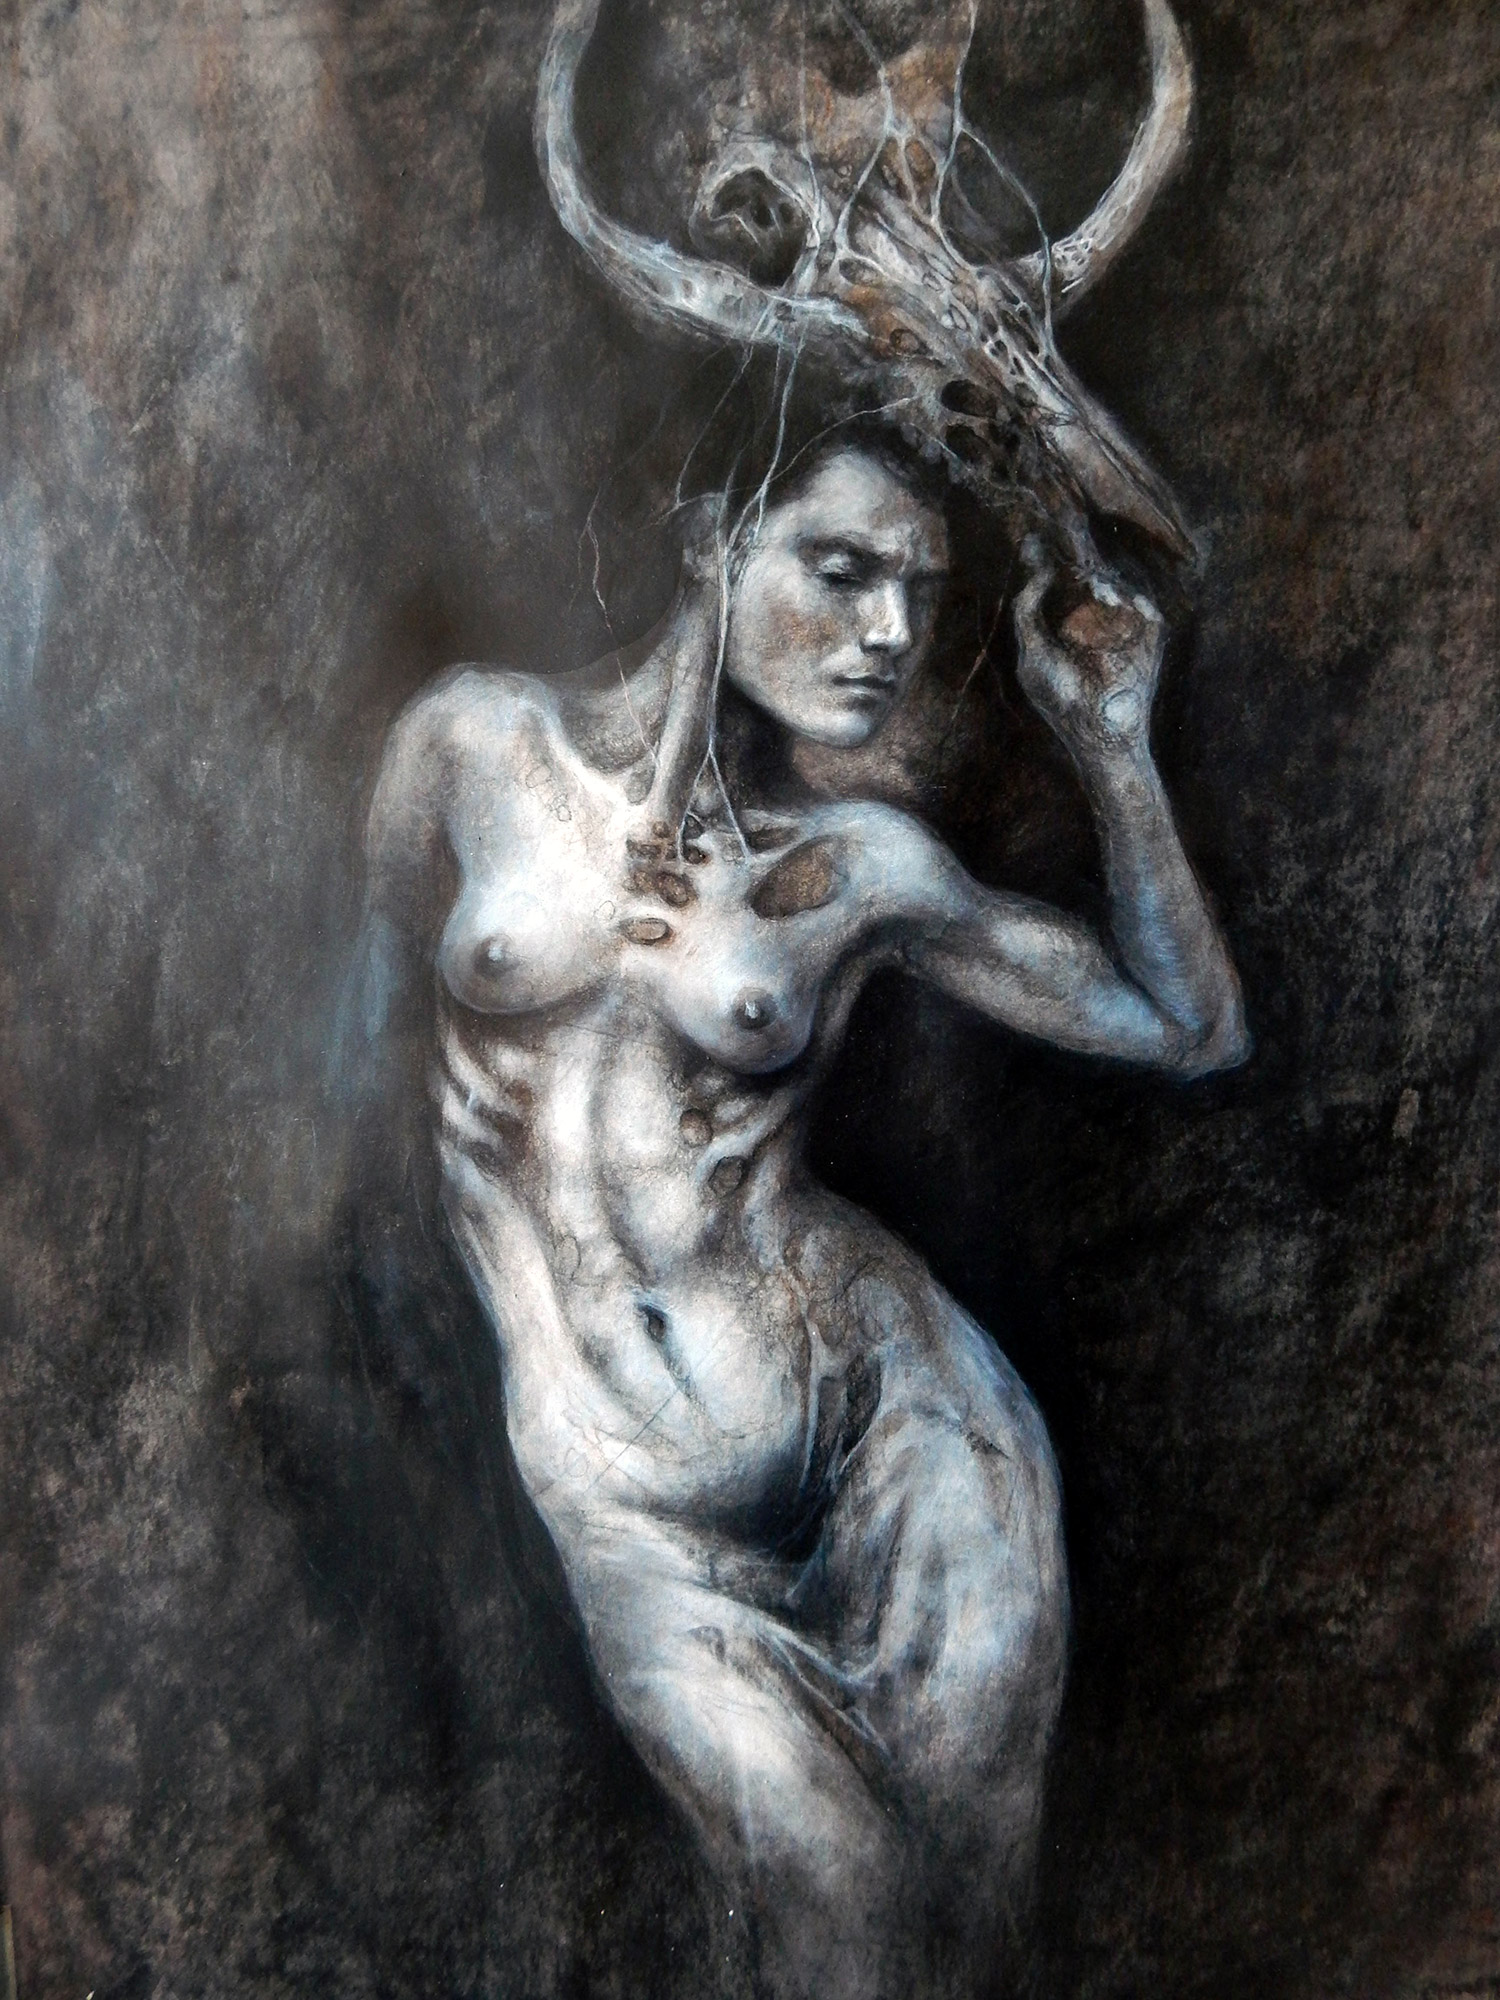 Aurore Lephilipponnat - woman dancing with skull on head